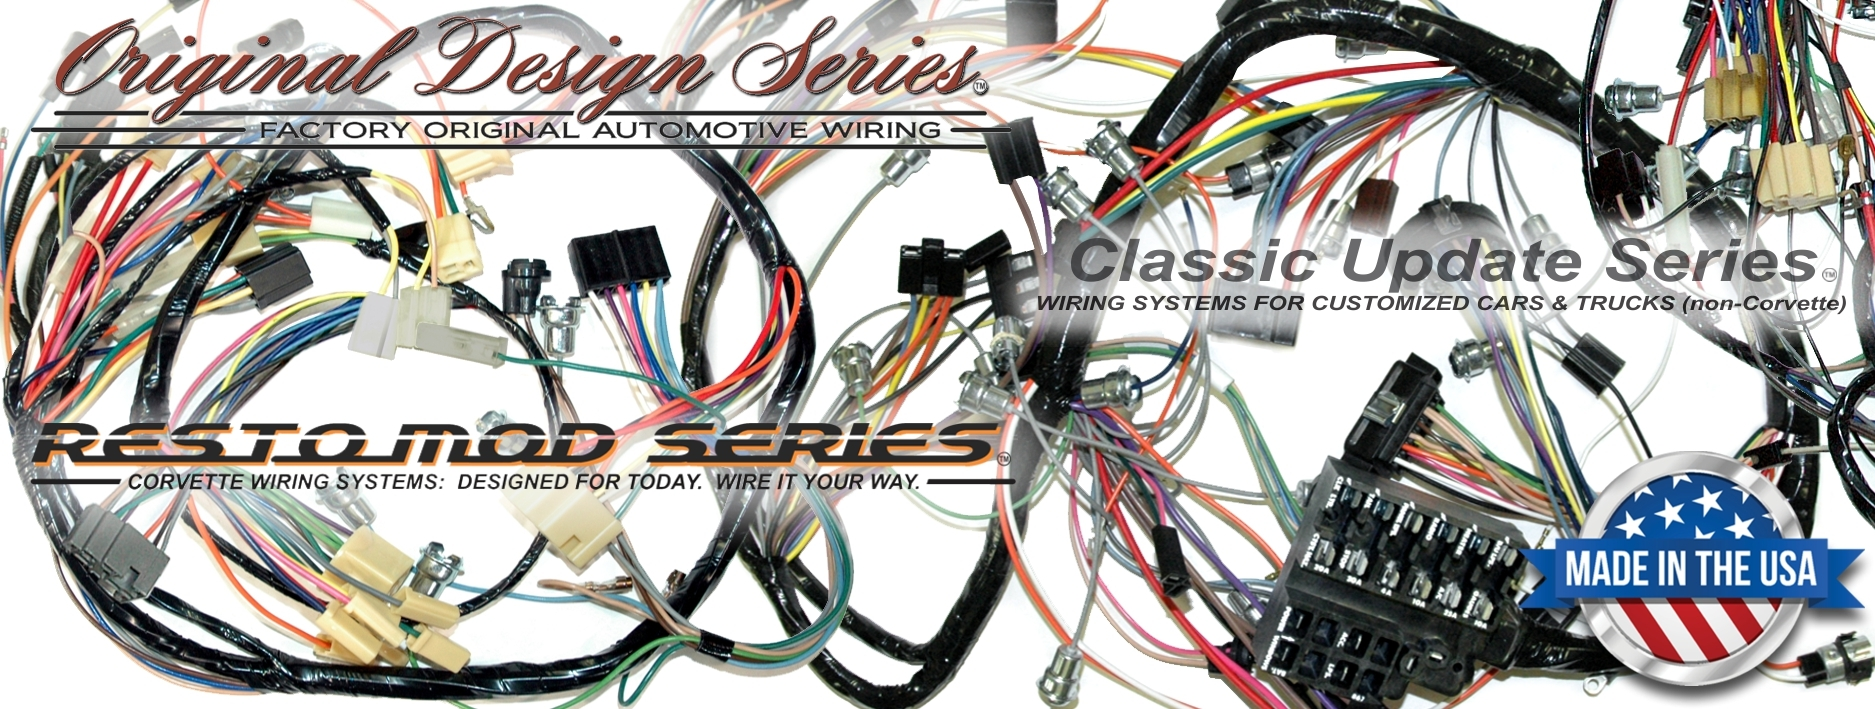 new header wiring_harnesses exact oem reproduction wiring harnesses and restomod wiring wiring harness for cars at gsmx.co